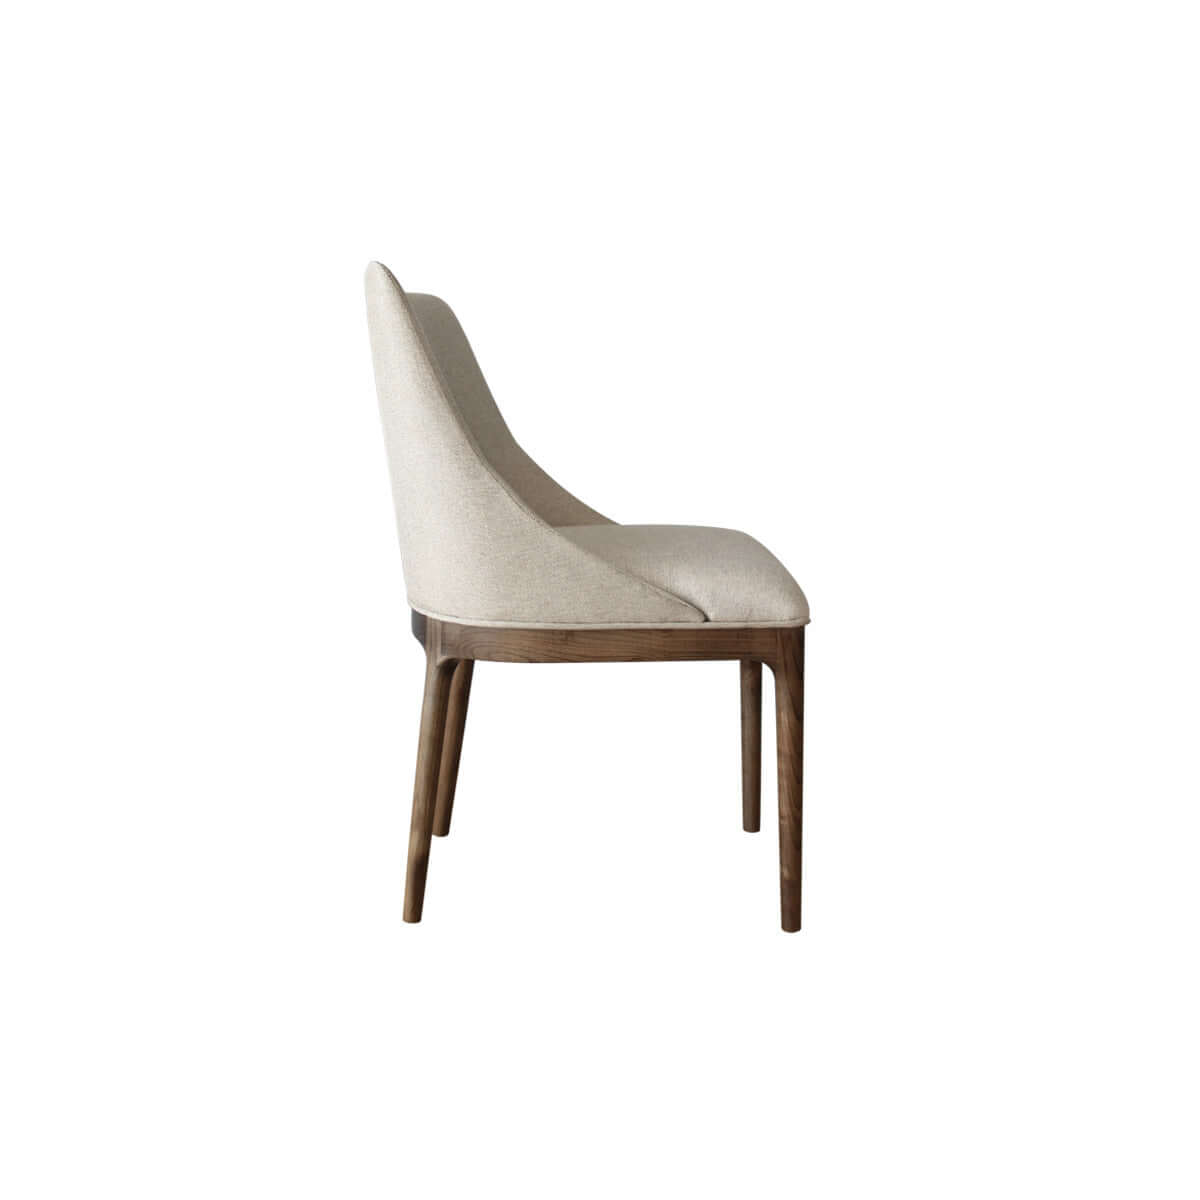 contemporary dining chair with straight wooden legs and a low backrest side view